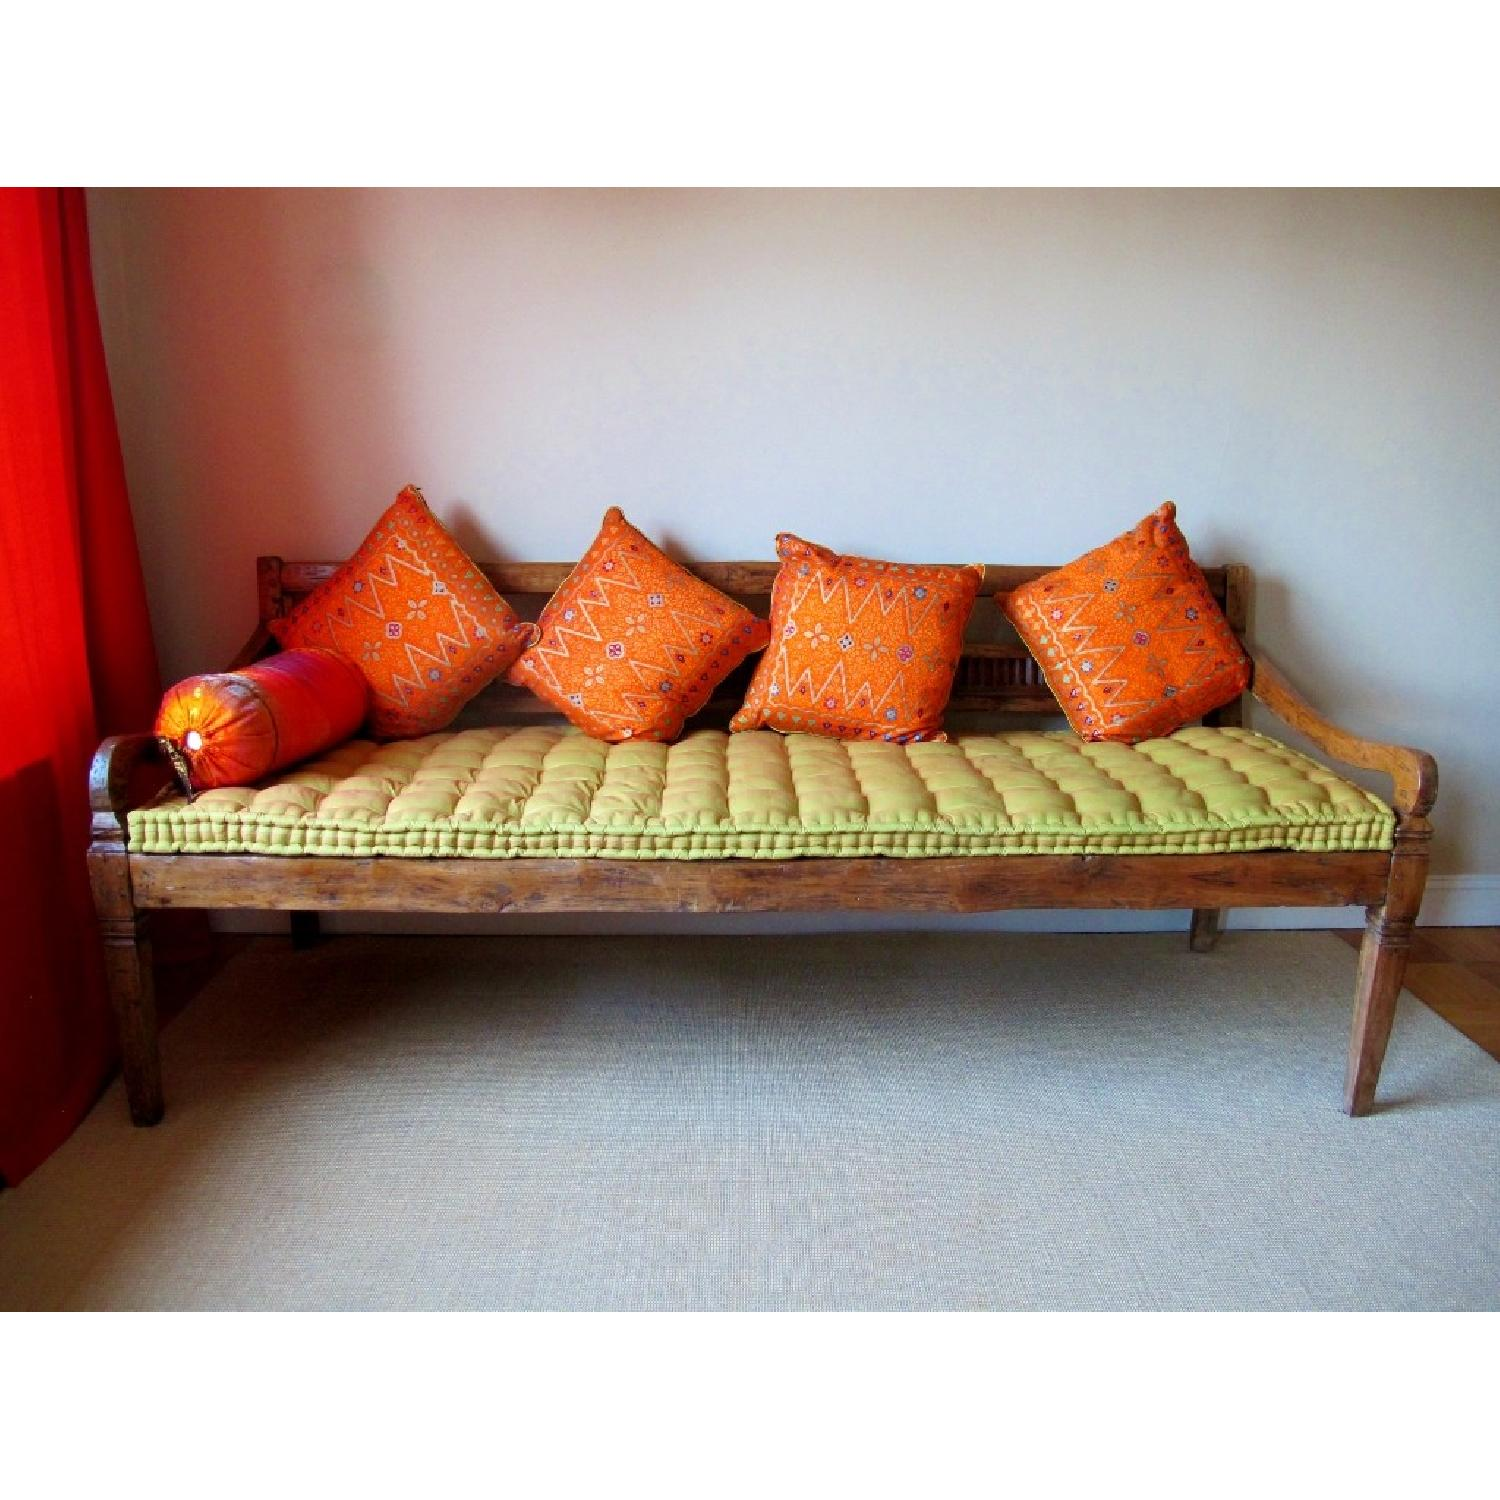 Antique Handmade Bali Dream Day Bed - image-2